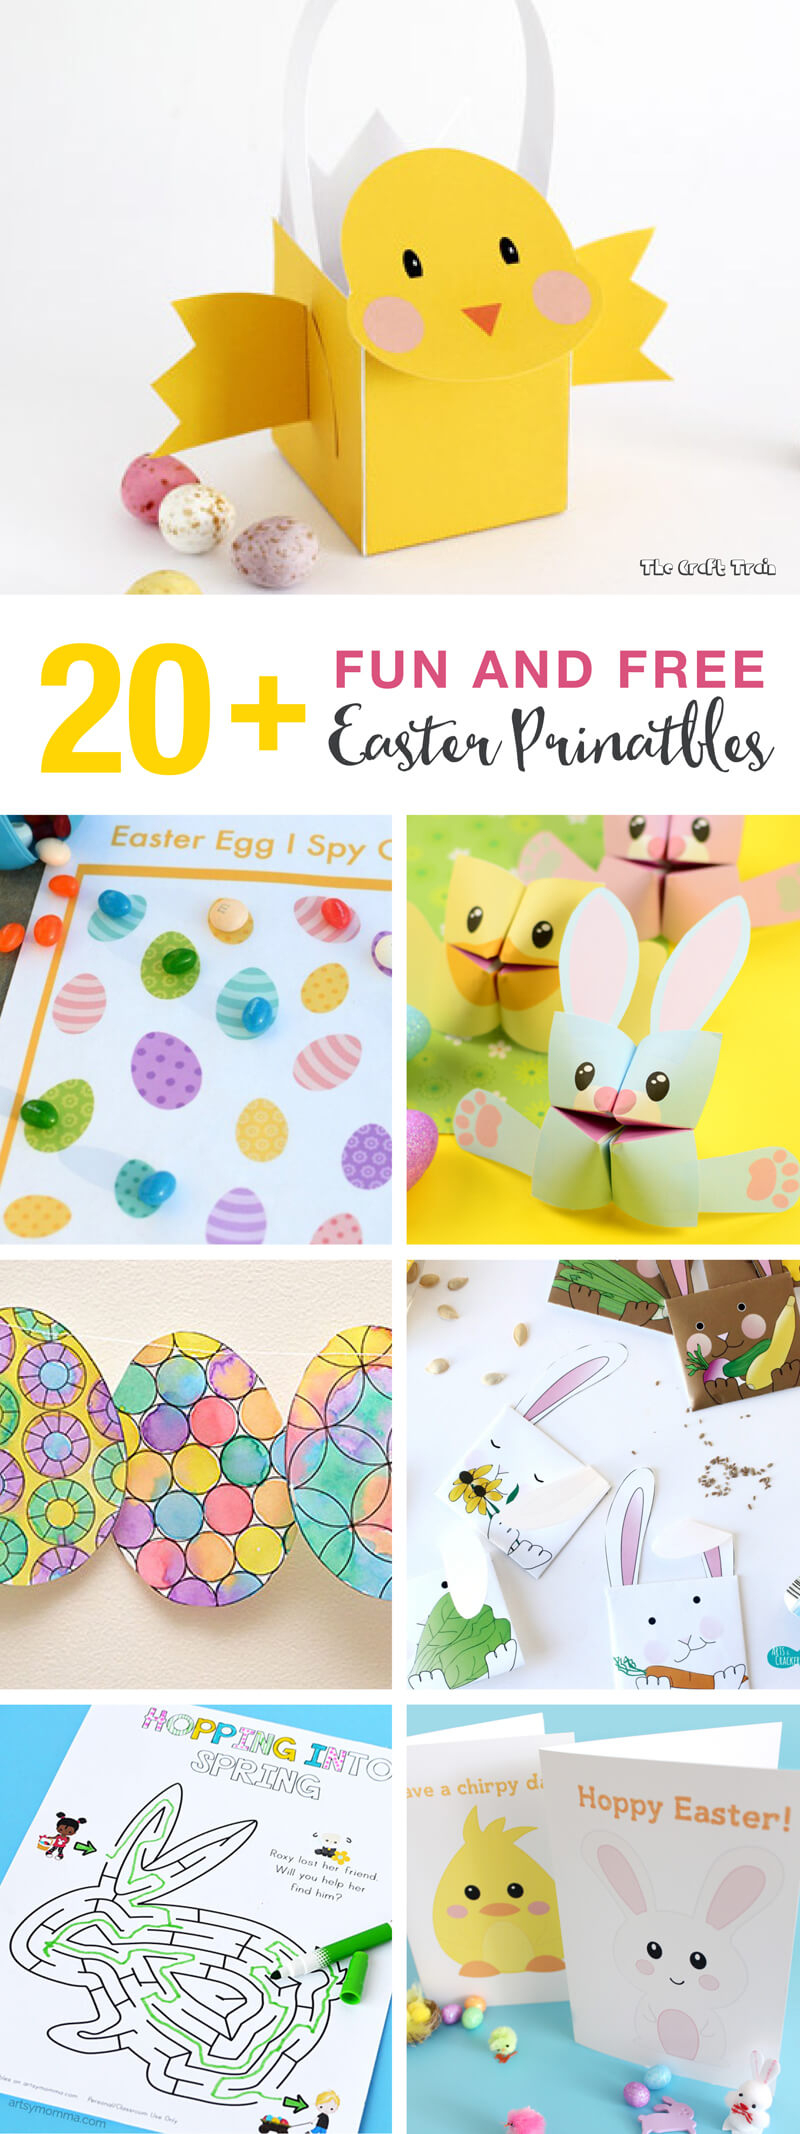 20+ Fun And Free Easter Printables For Kids | The Craft Train - Free Printable Easter Decorations